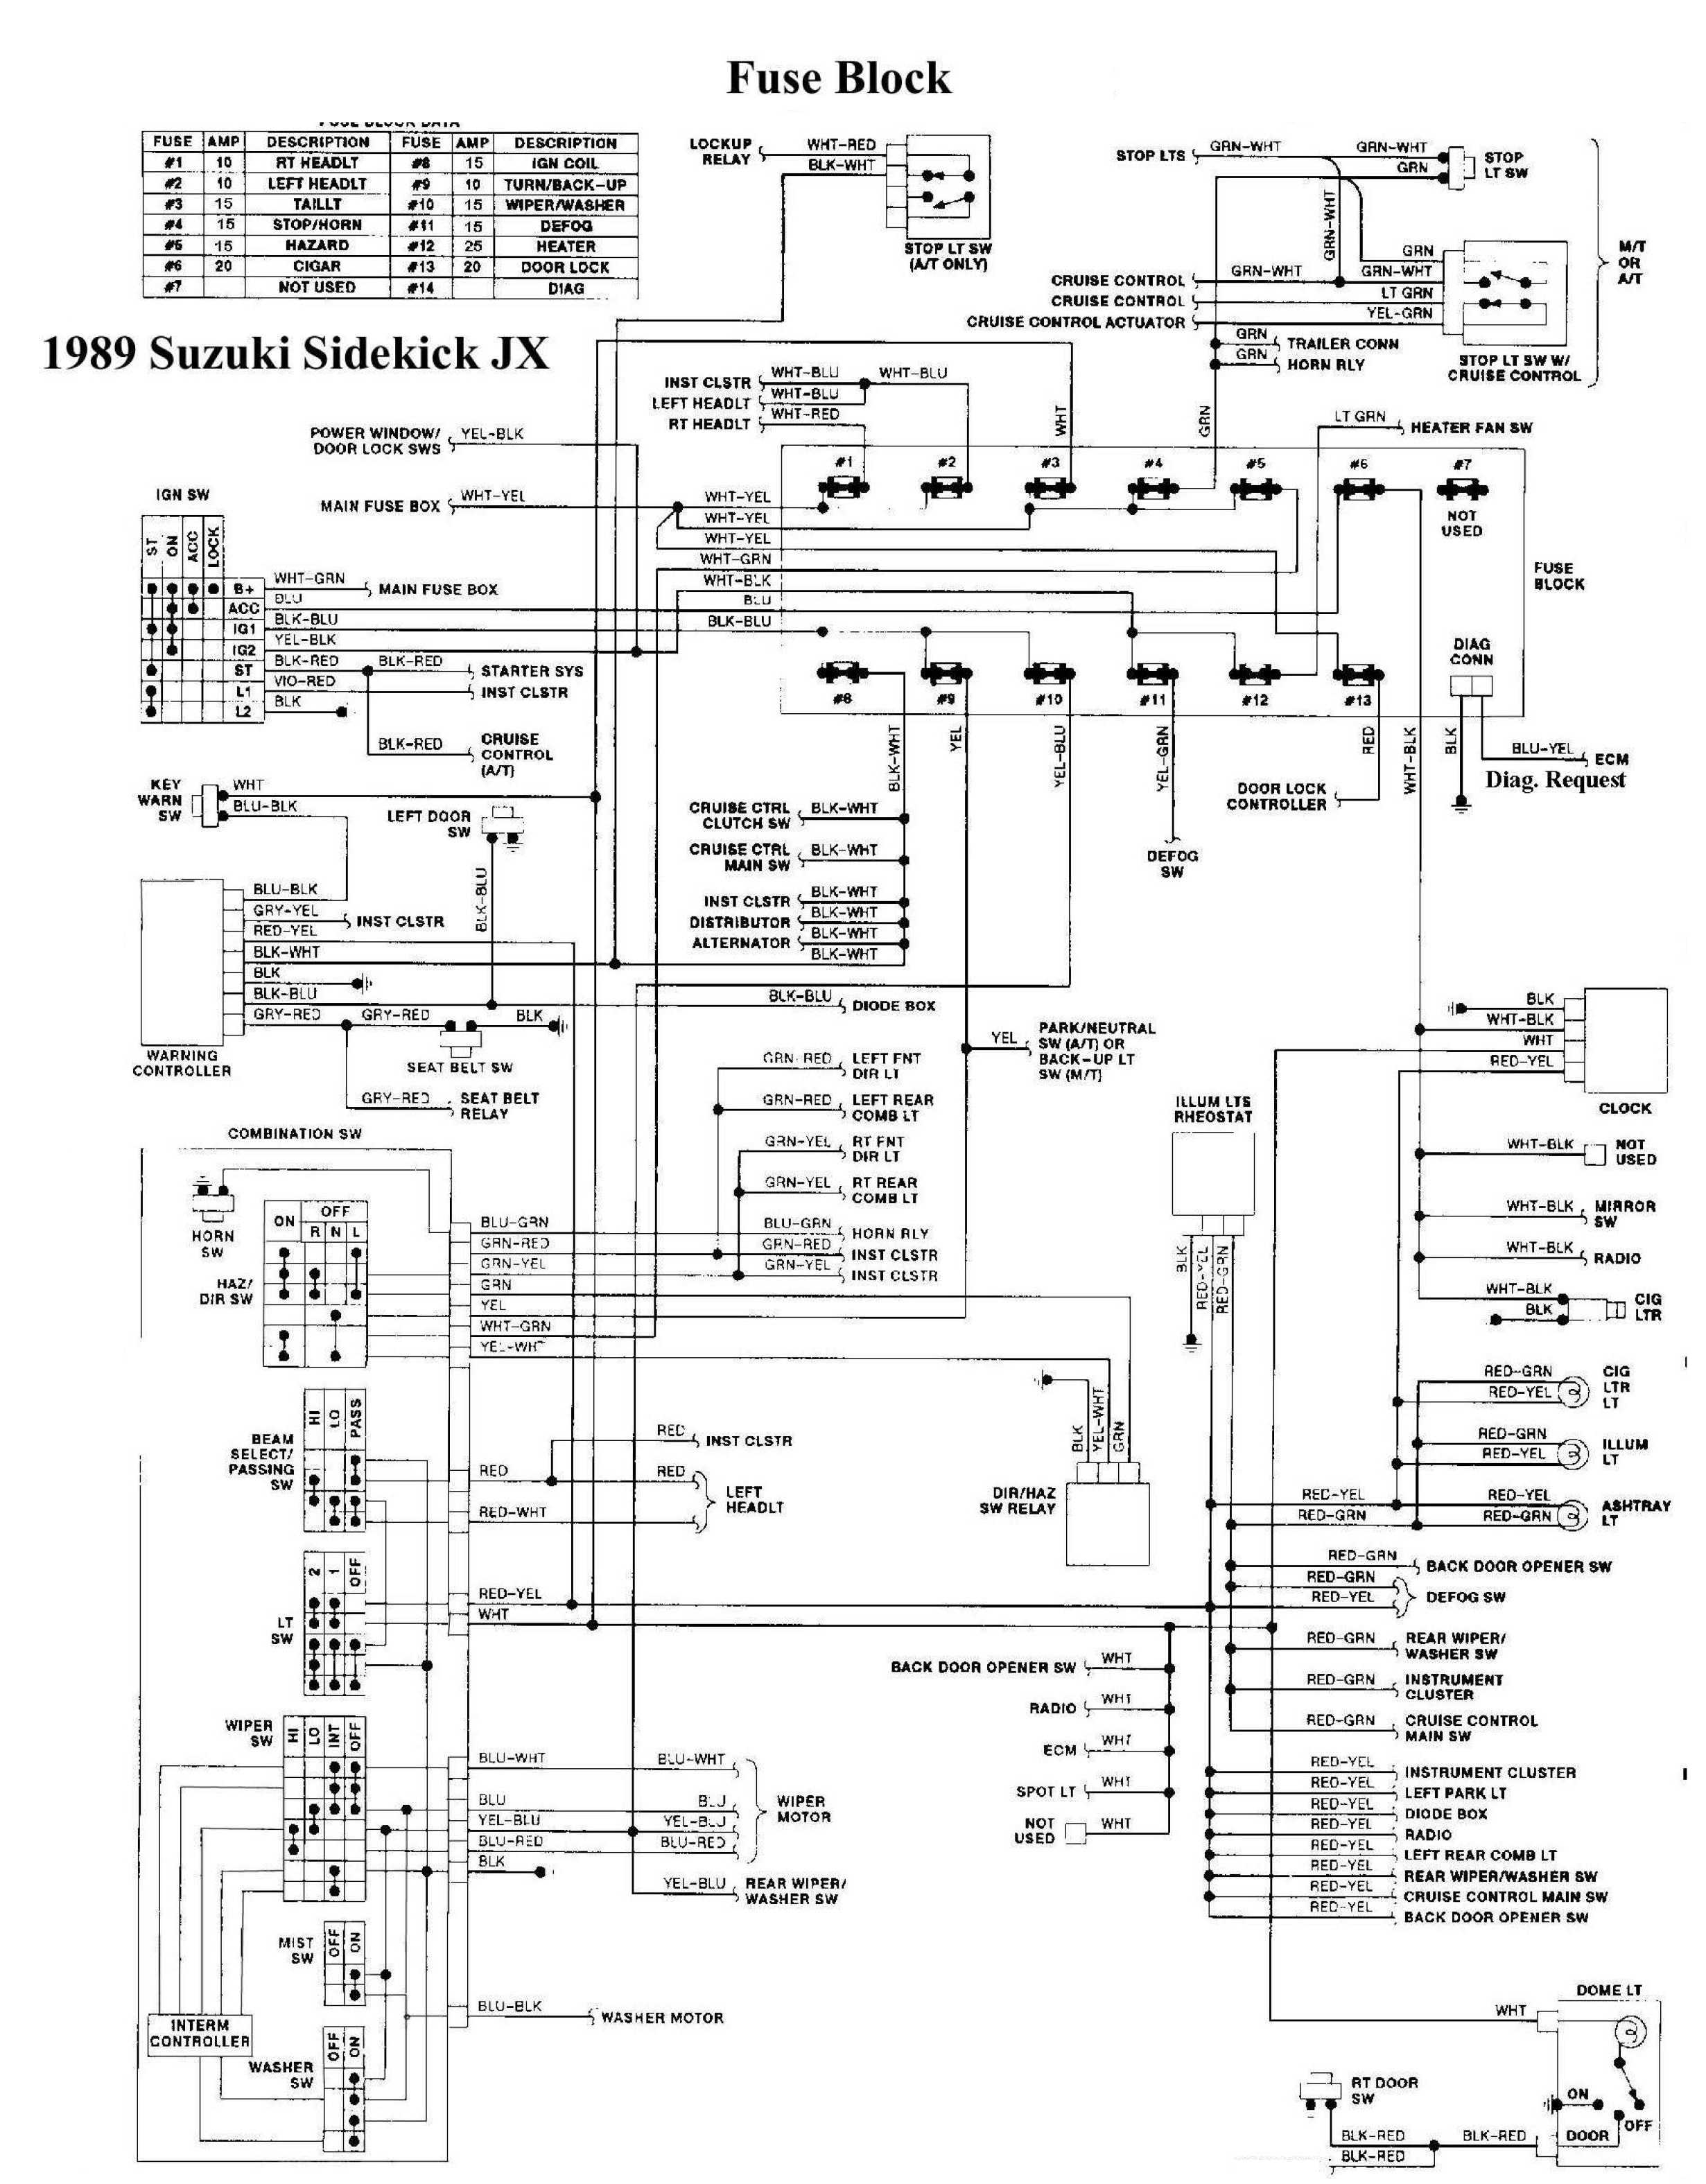 89_elect3a headlight switch problem! suzuki forums suzuki forum site 1997 geo metro wire diagram at cita.asia